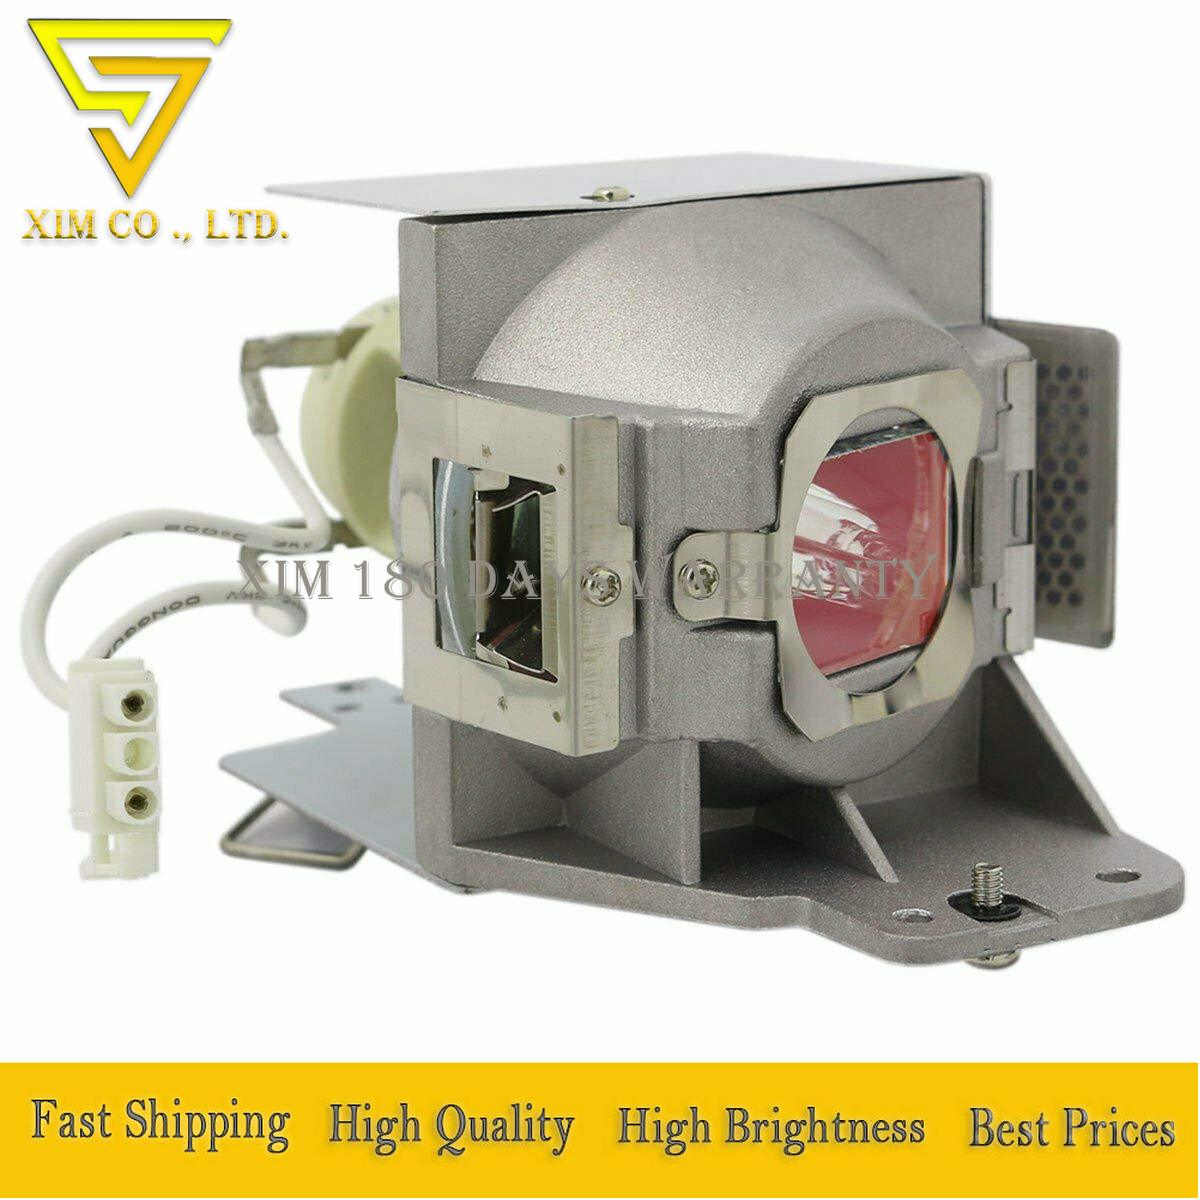 Projector Lamp RLC-079 5J.J9E05.001 MC.JFZ11.001 For VIEWSONIC PJD7820HD PJD7822HDL For BenQ W1400 W1500 For ACER H6510BD P1500